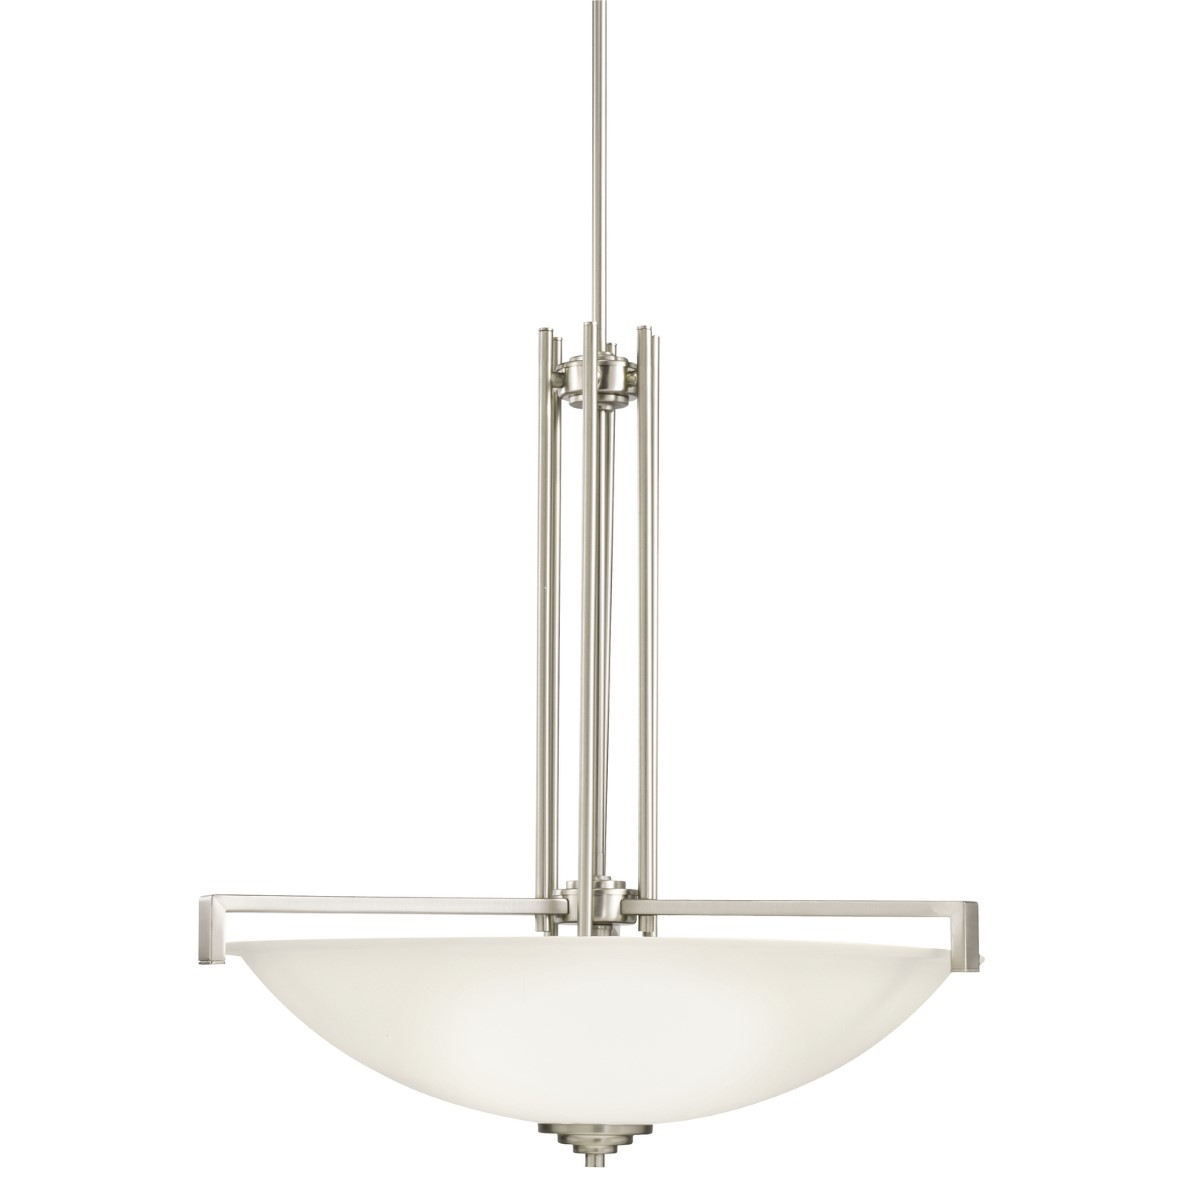 Kichler Eileen Eileen Pendant Light with Satin Etched White Steel Shade - Brushed Nickel (3299NI)